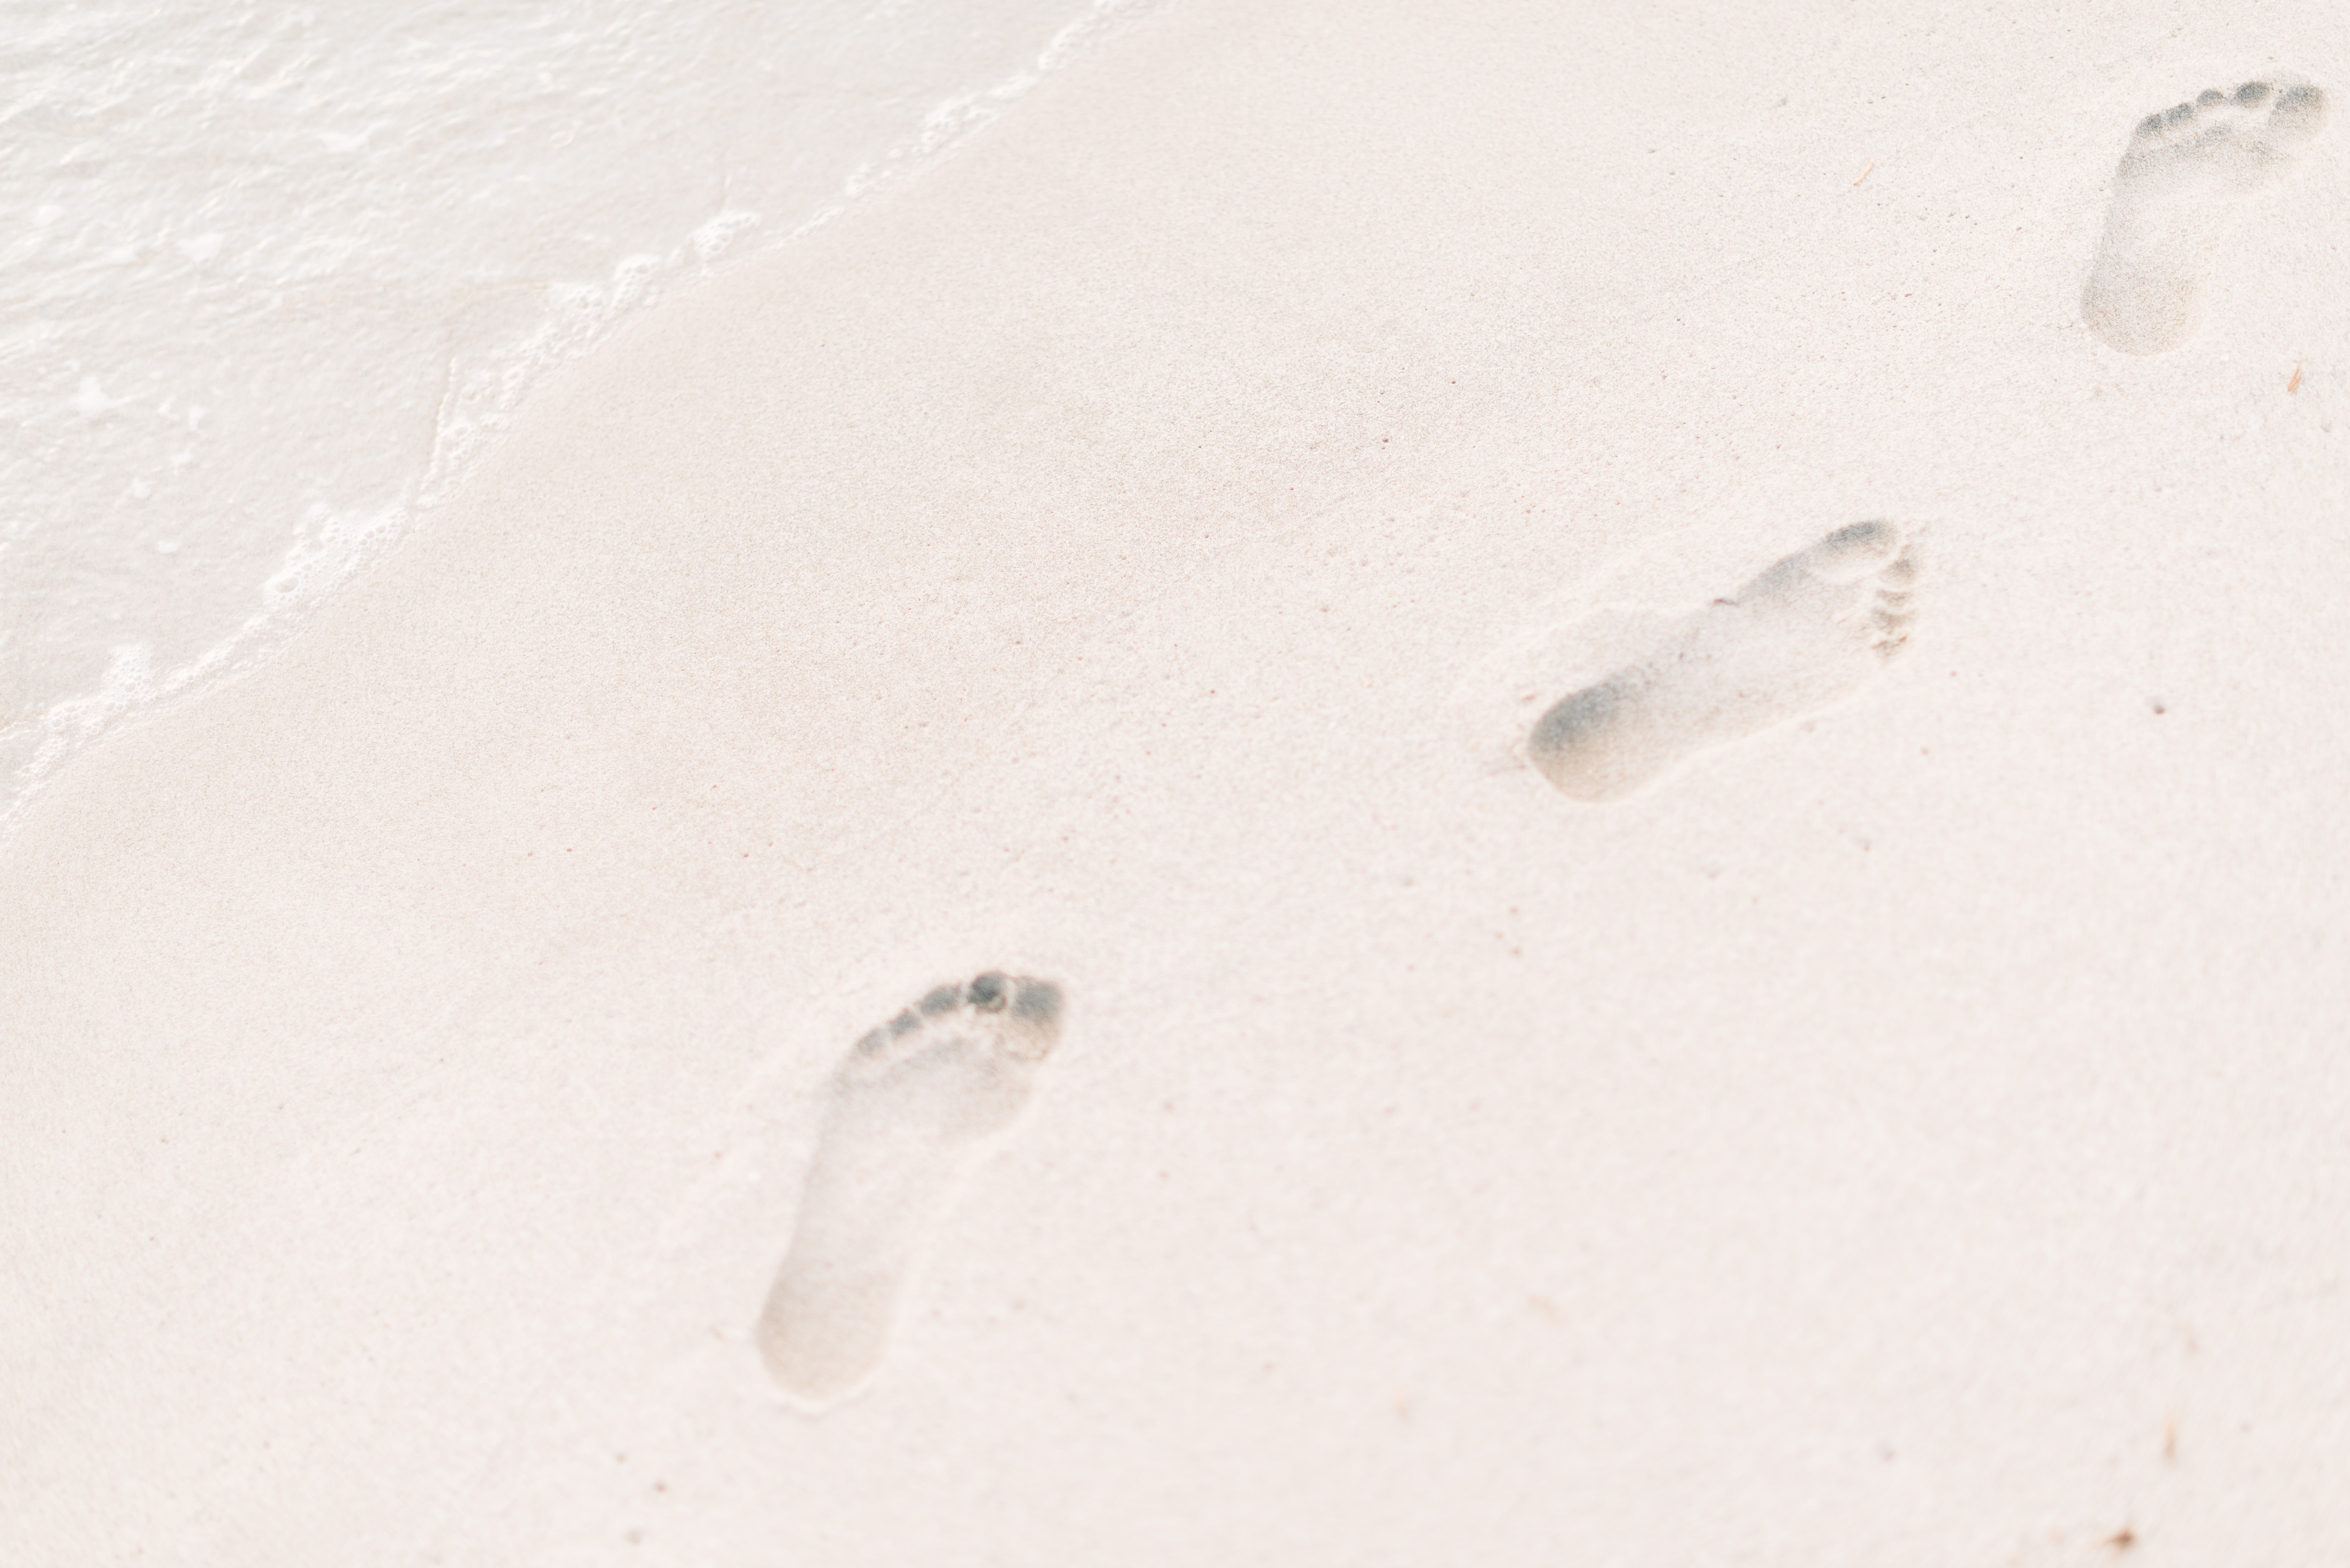 A close-up of footprints left by a person walking barefoot on a sandy beach